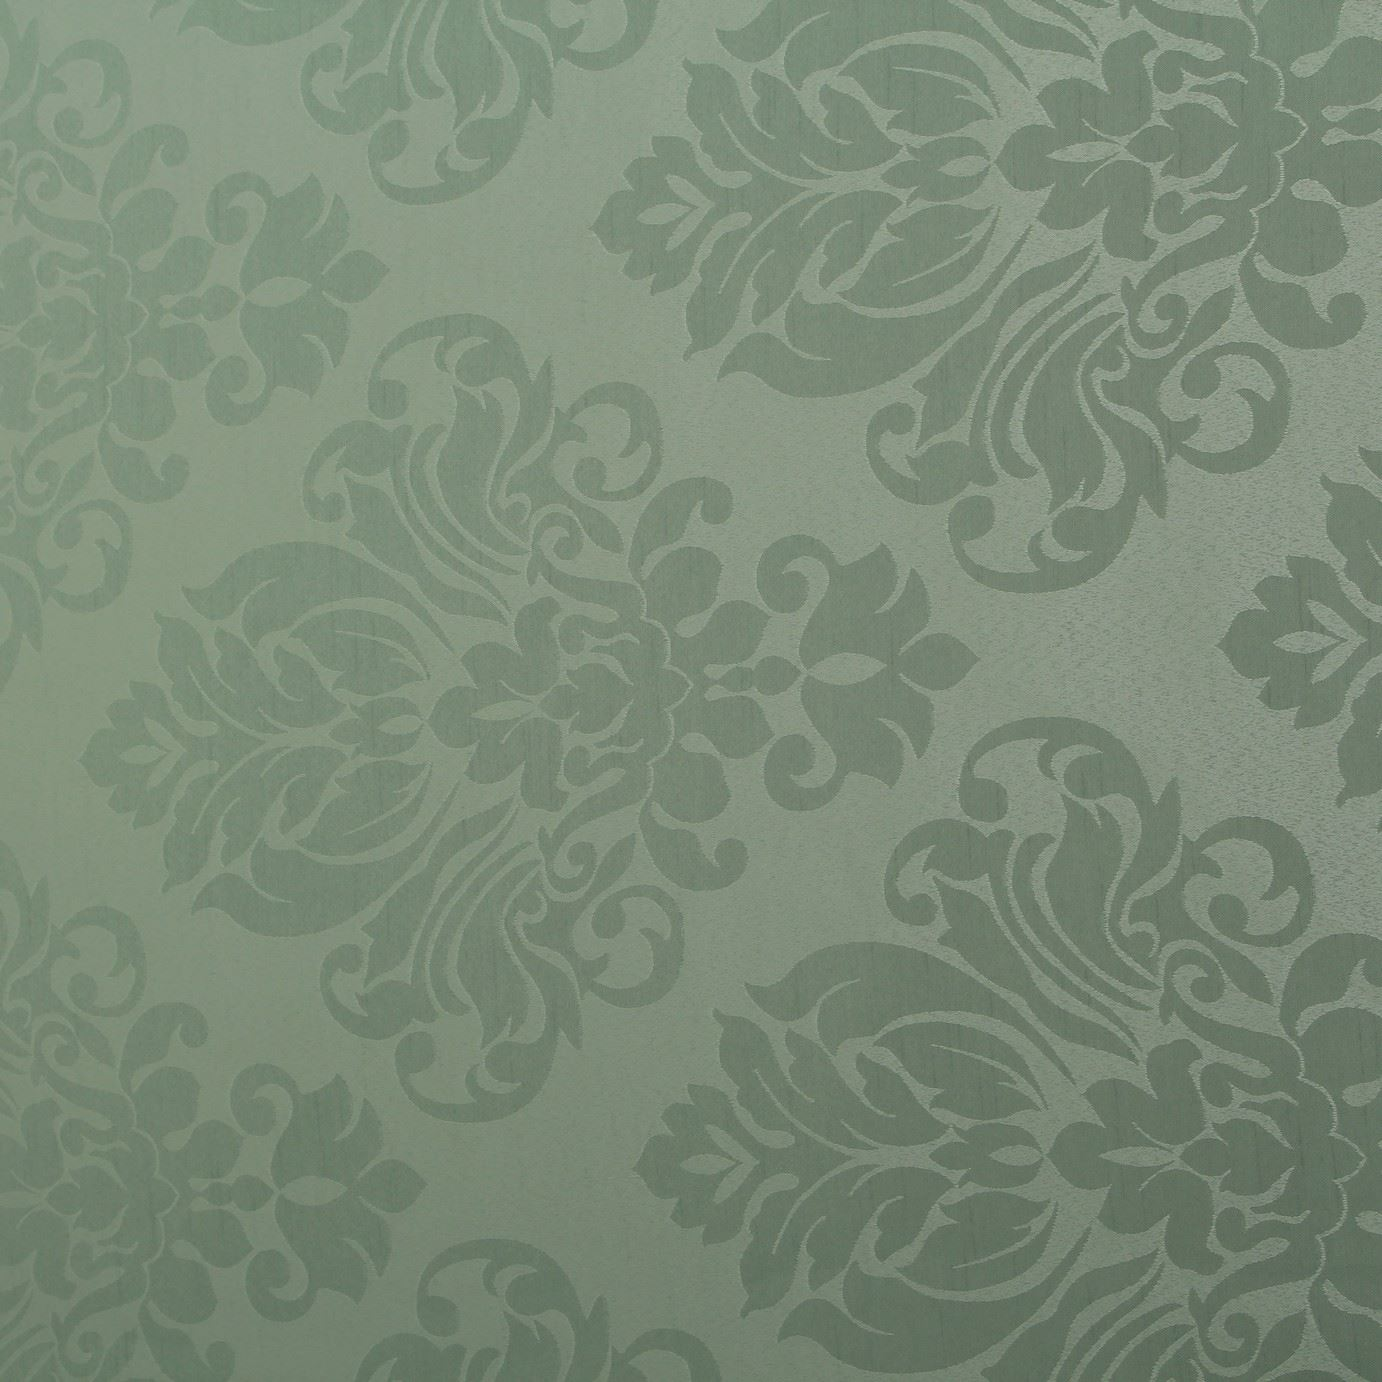 thumbnail 35 - FLORAL DAMASK FAUX SILK JACQUARD CURTAIN UPHOLSTERY FABRIC MATERIAL 12 COLOURS